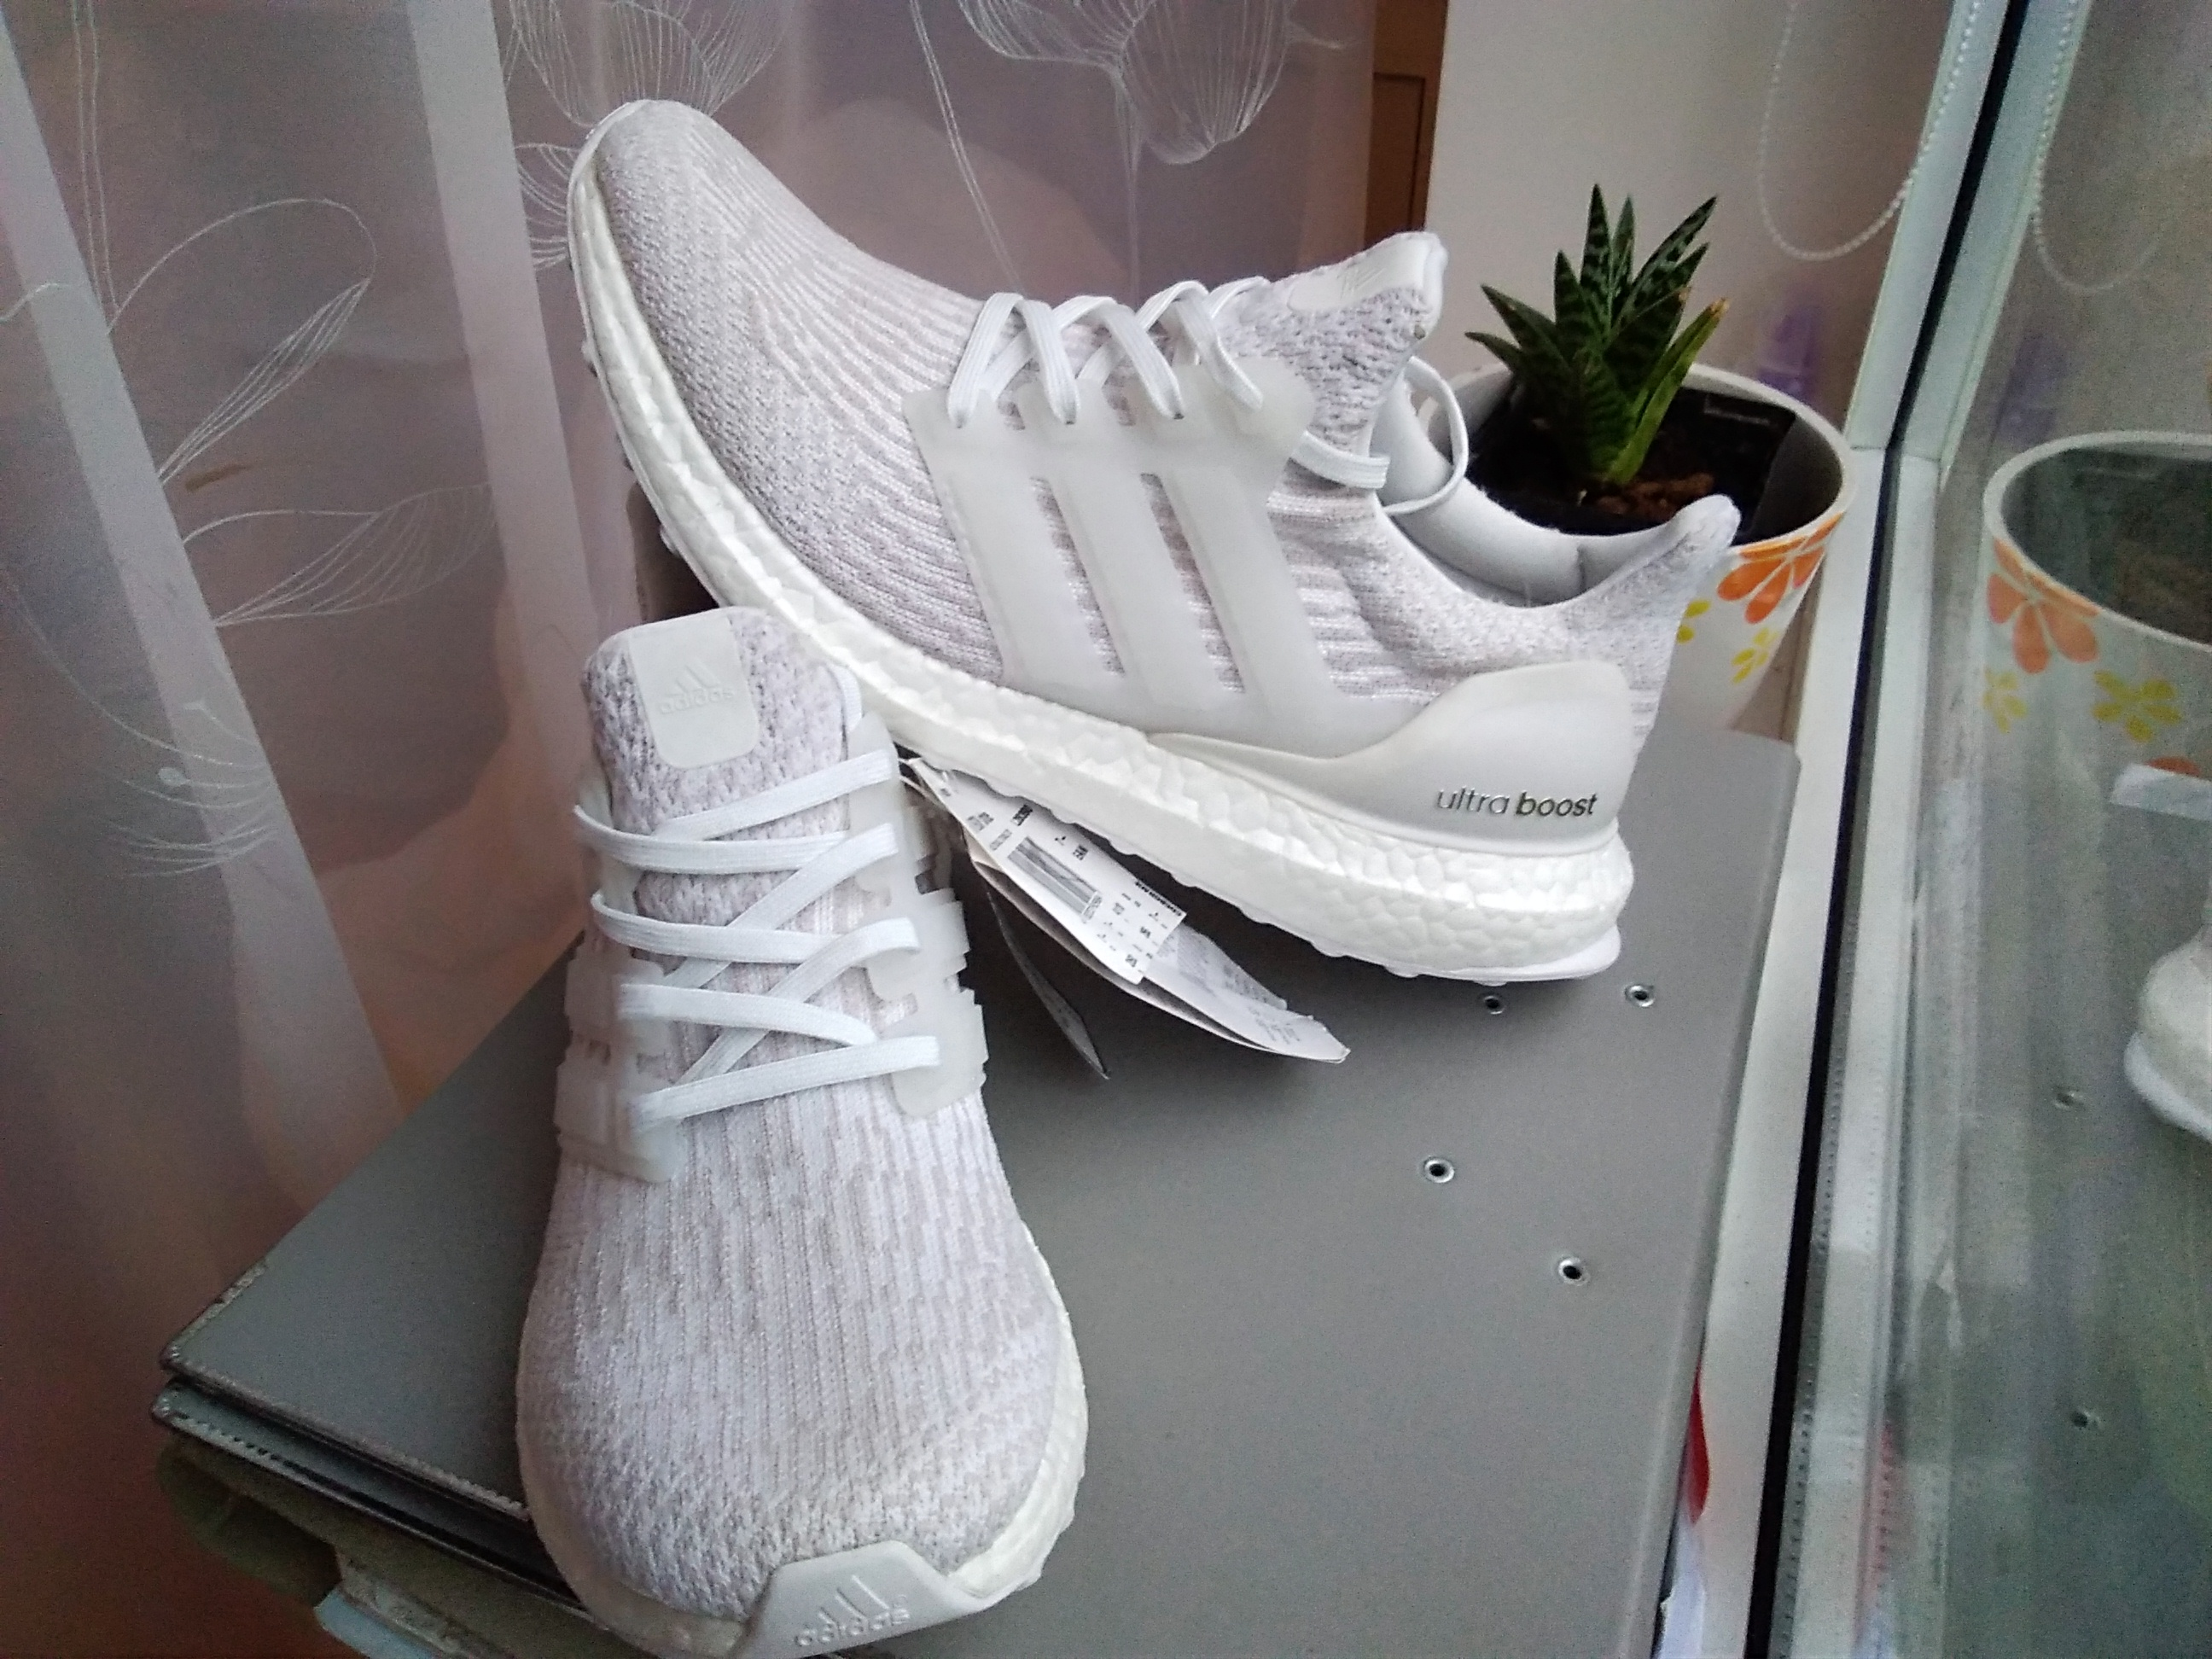 c5cf45cd386e0 Adidas Adidas Ultra boost 3.0 women womens girl white pearl grey under  retail Size 8.5 - Low-Top Sneakers for Sale - Grailed